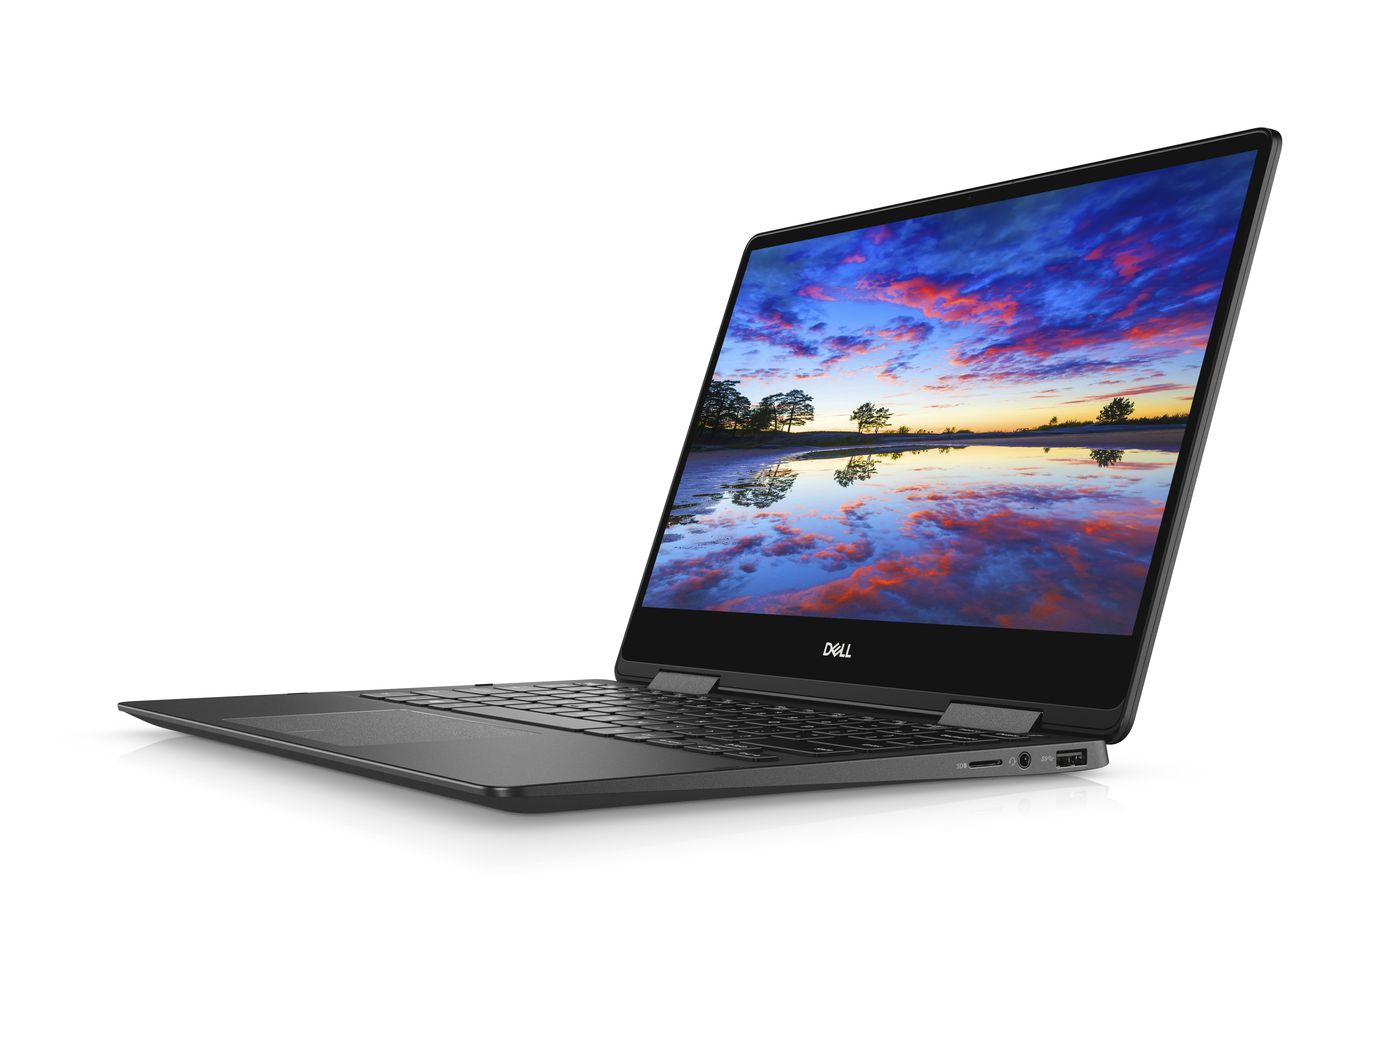 Dell's Inspiron 7000 line: XPS features at a lower price